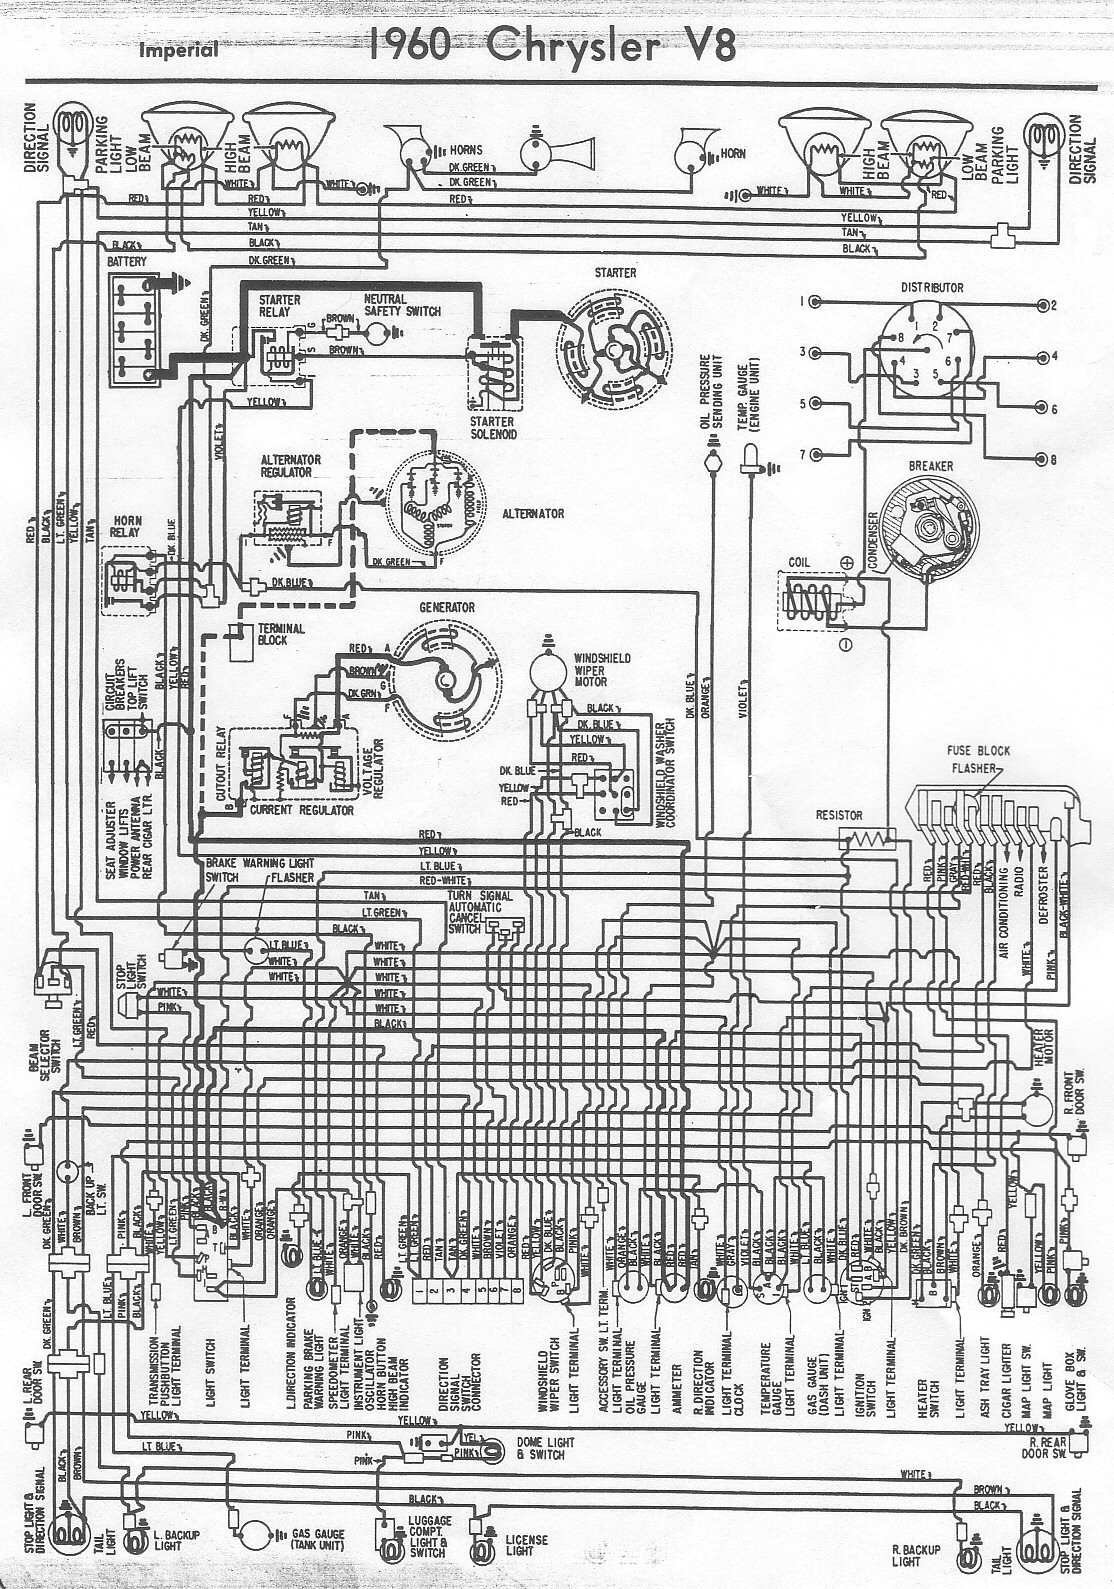 imperial wiring diagrams wiring diagram rh blaknwyt co Schematic Circuit Diagram Ladder Diagram